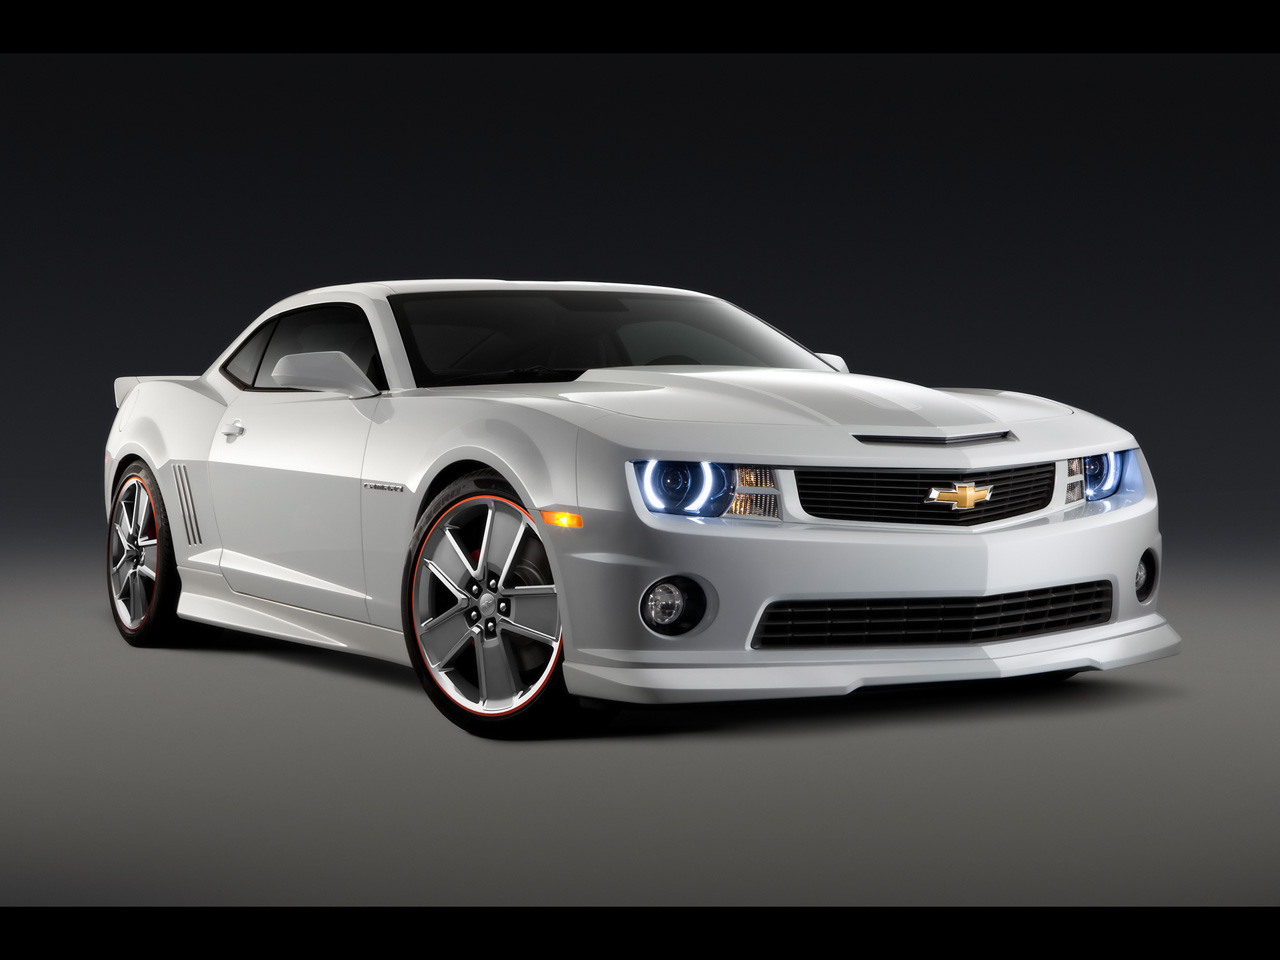 Used Chevrolet Cars For Sale In Seattle